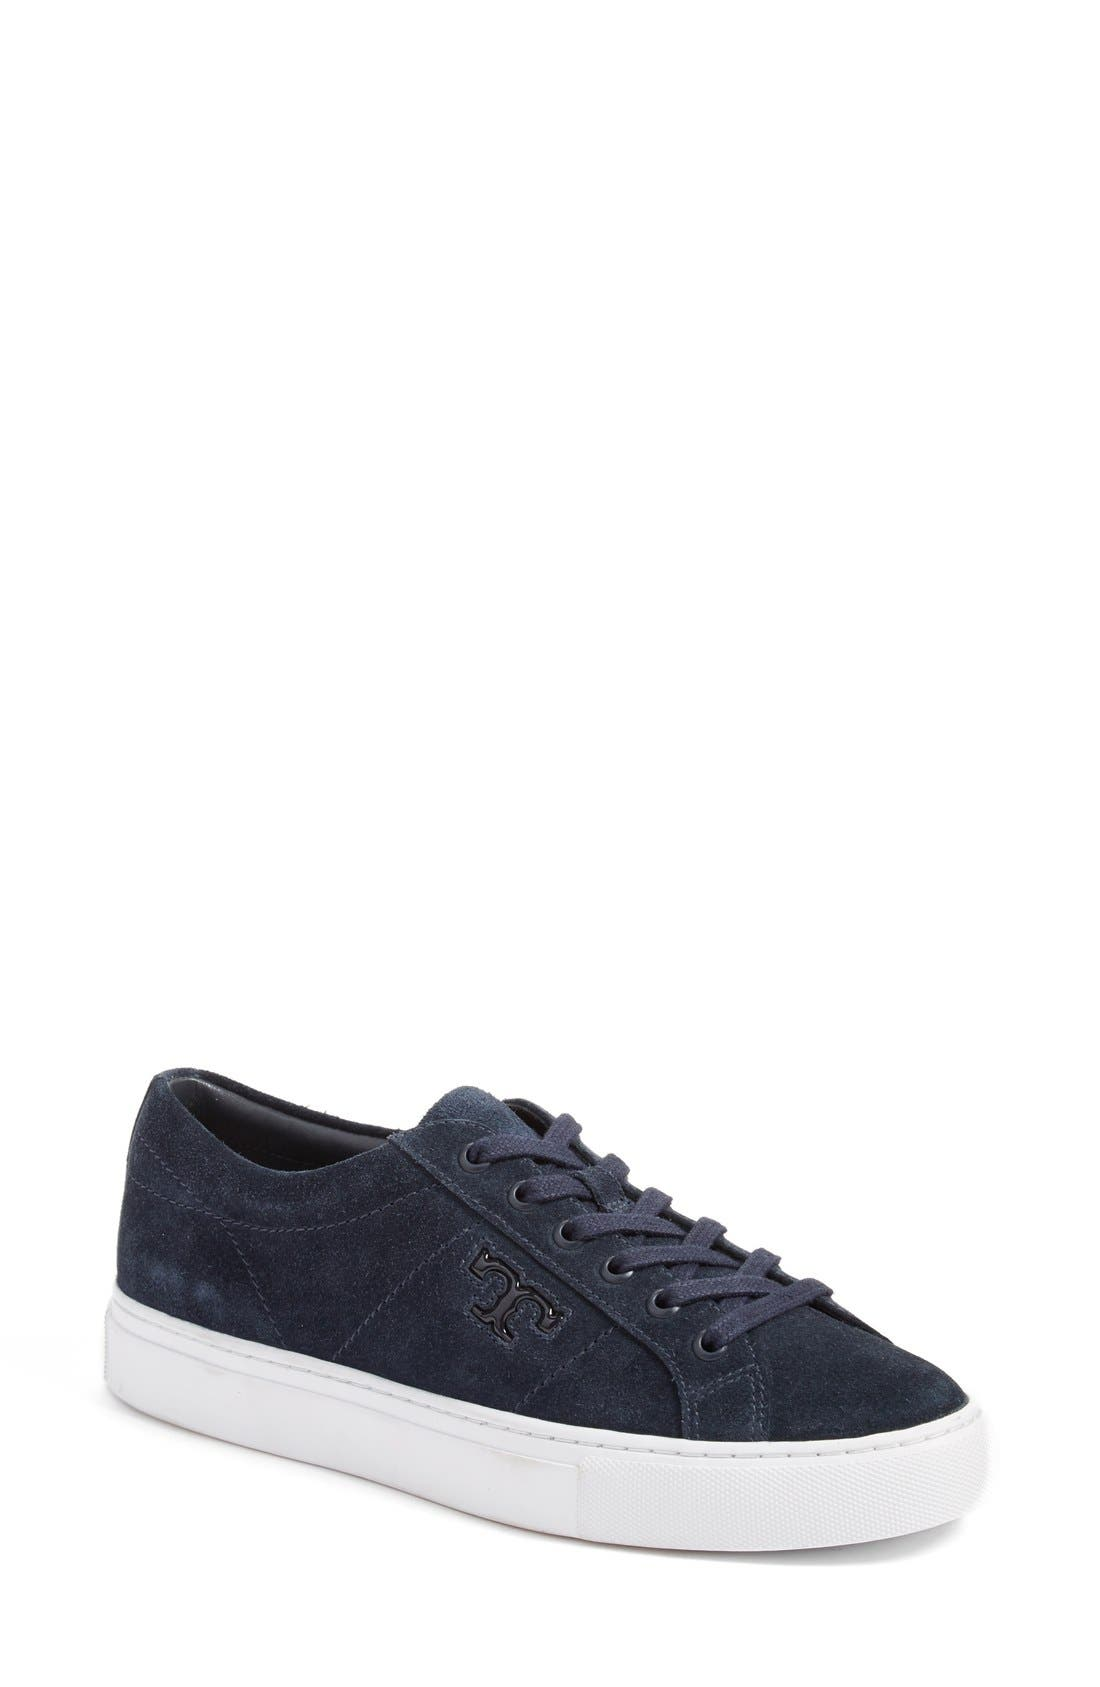 Alternate Image 1 Selected - Tory Burch 'Chace' Low Top Sneaker (Women)